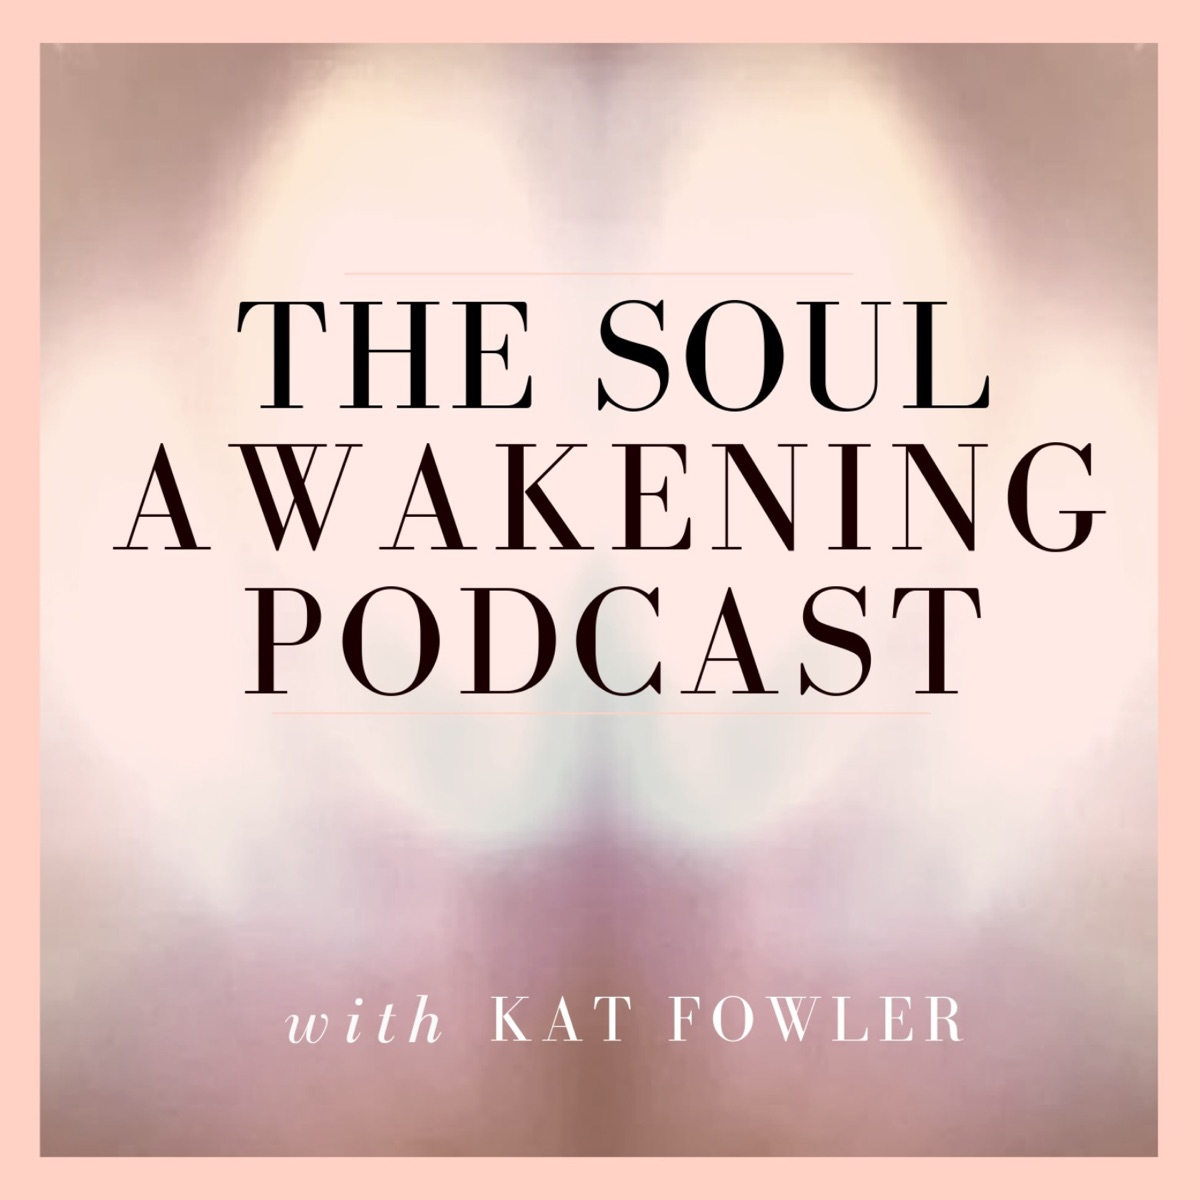 Kat Fowler: 8 Limbs of Yoga: the Path to Self-Realization